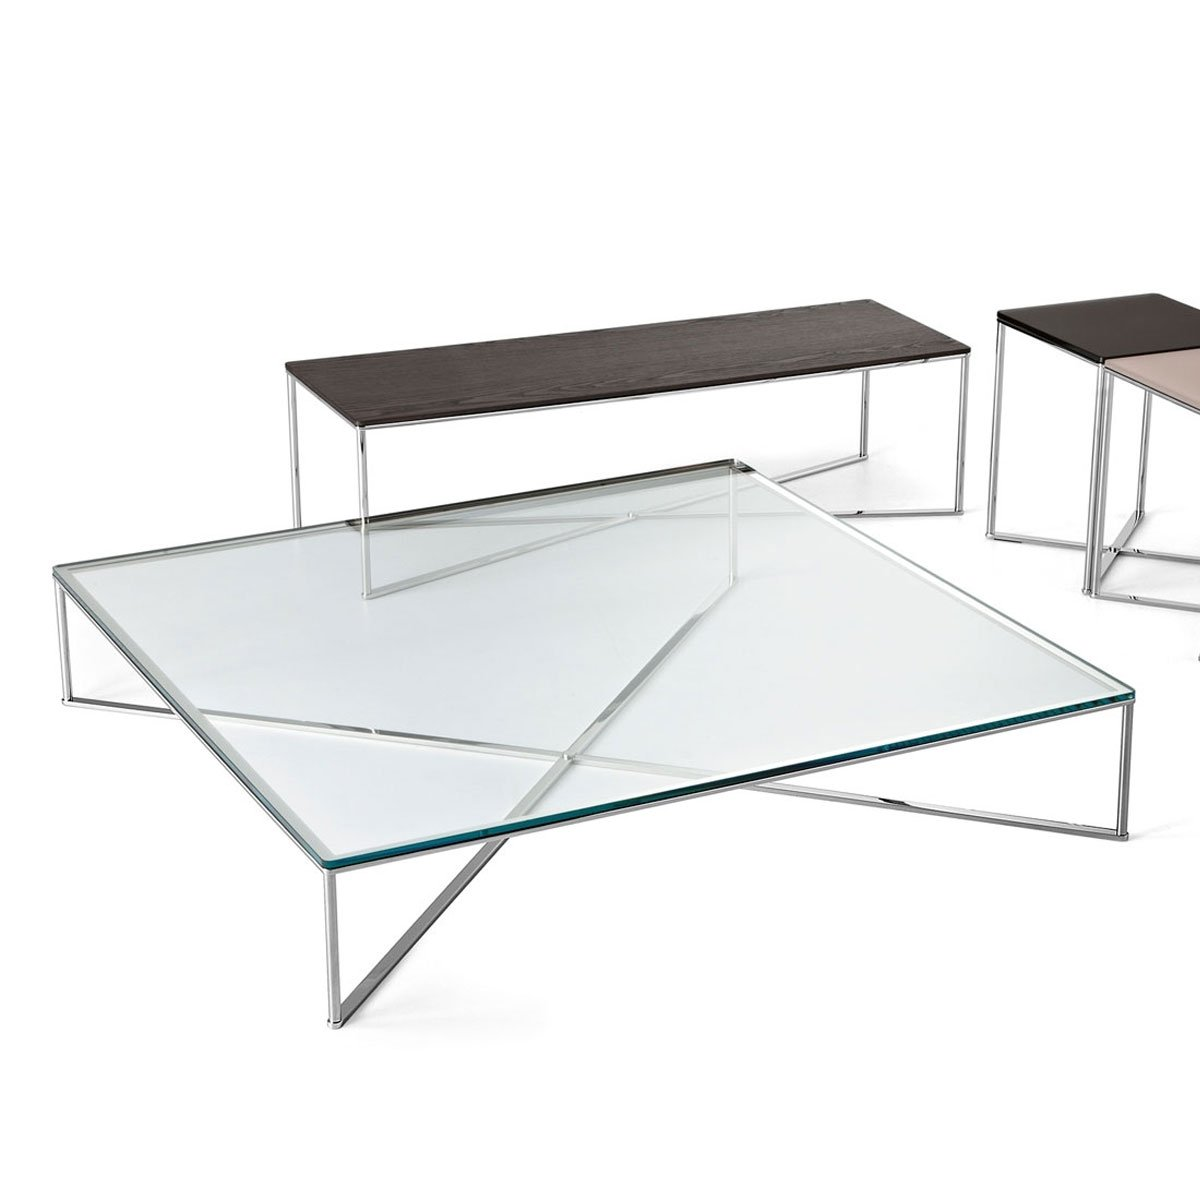 Glass furniture blog the best glass furniture from around the globe Steel and glass coffee table